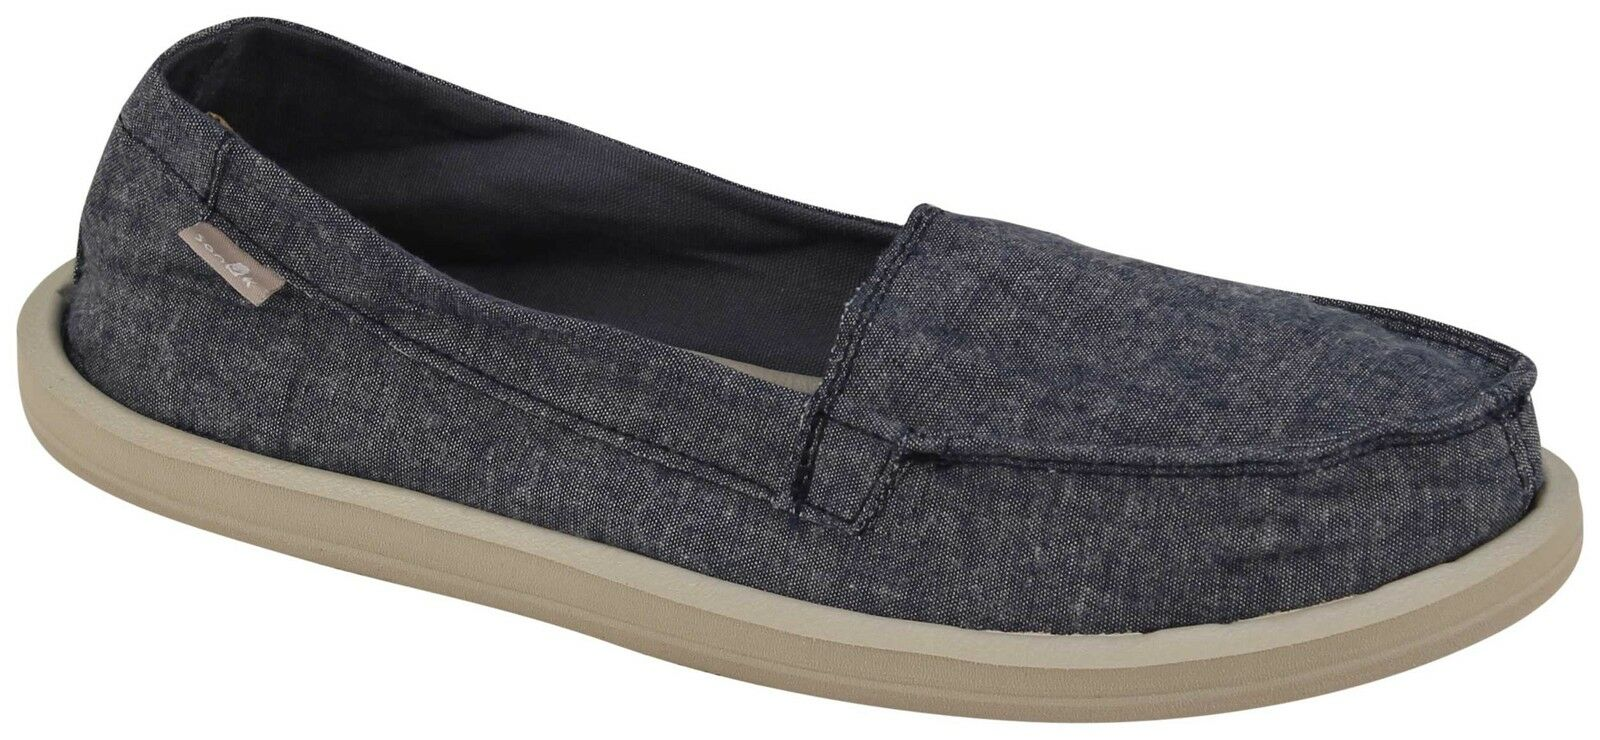 Sanuk Shorty TX Sidewalk Surfer - Slate Blue Chambray - New